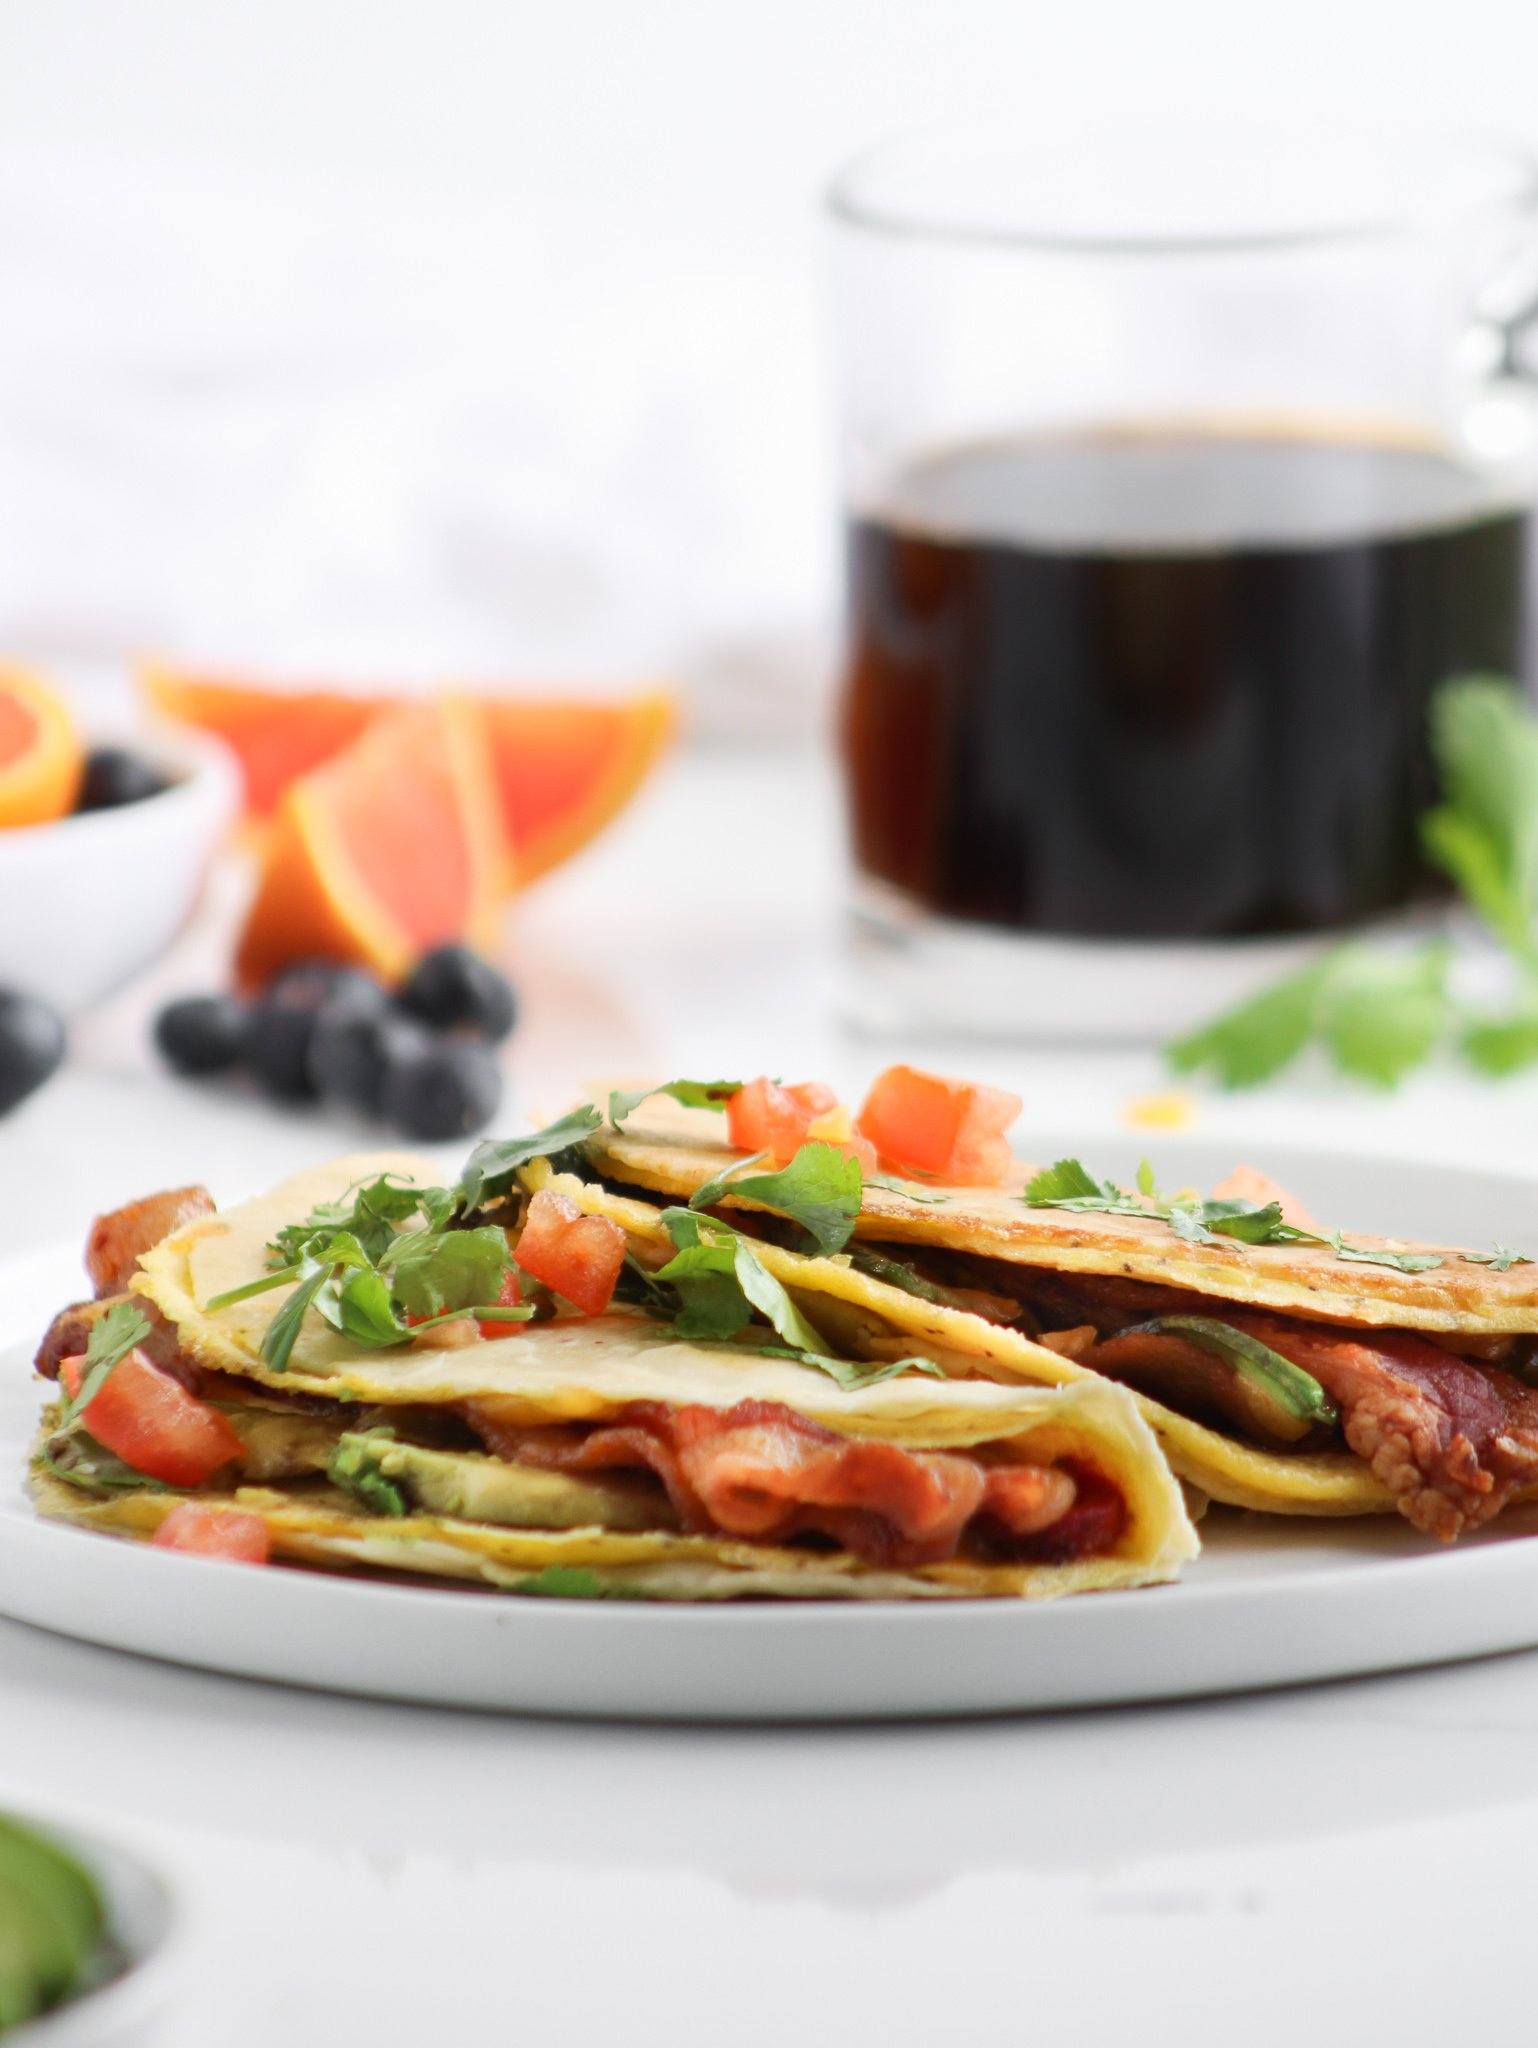 gluten-free crispy breakfast tacos sitting on a white plate topped with cilantro and fresh tomatoes with avocado, blood orange and blueberries with fresh coffee for an easy breakfast.